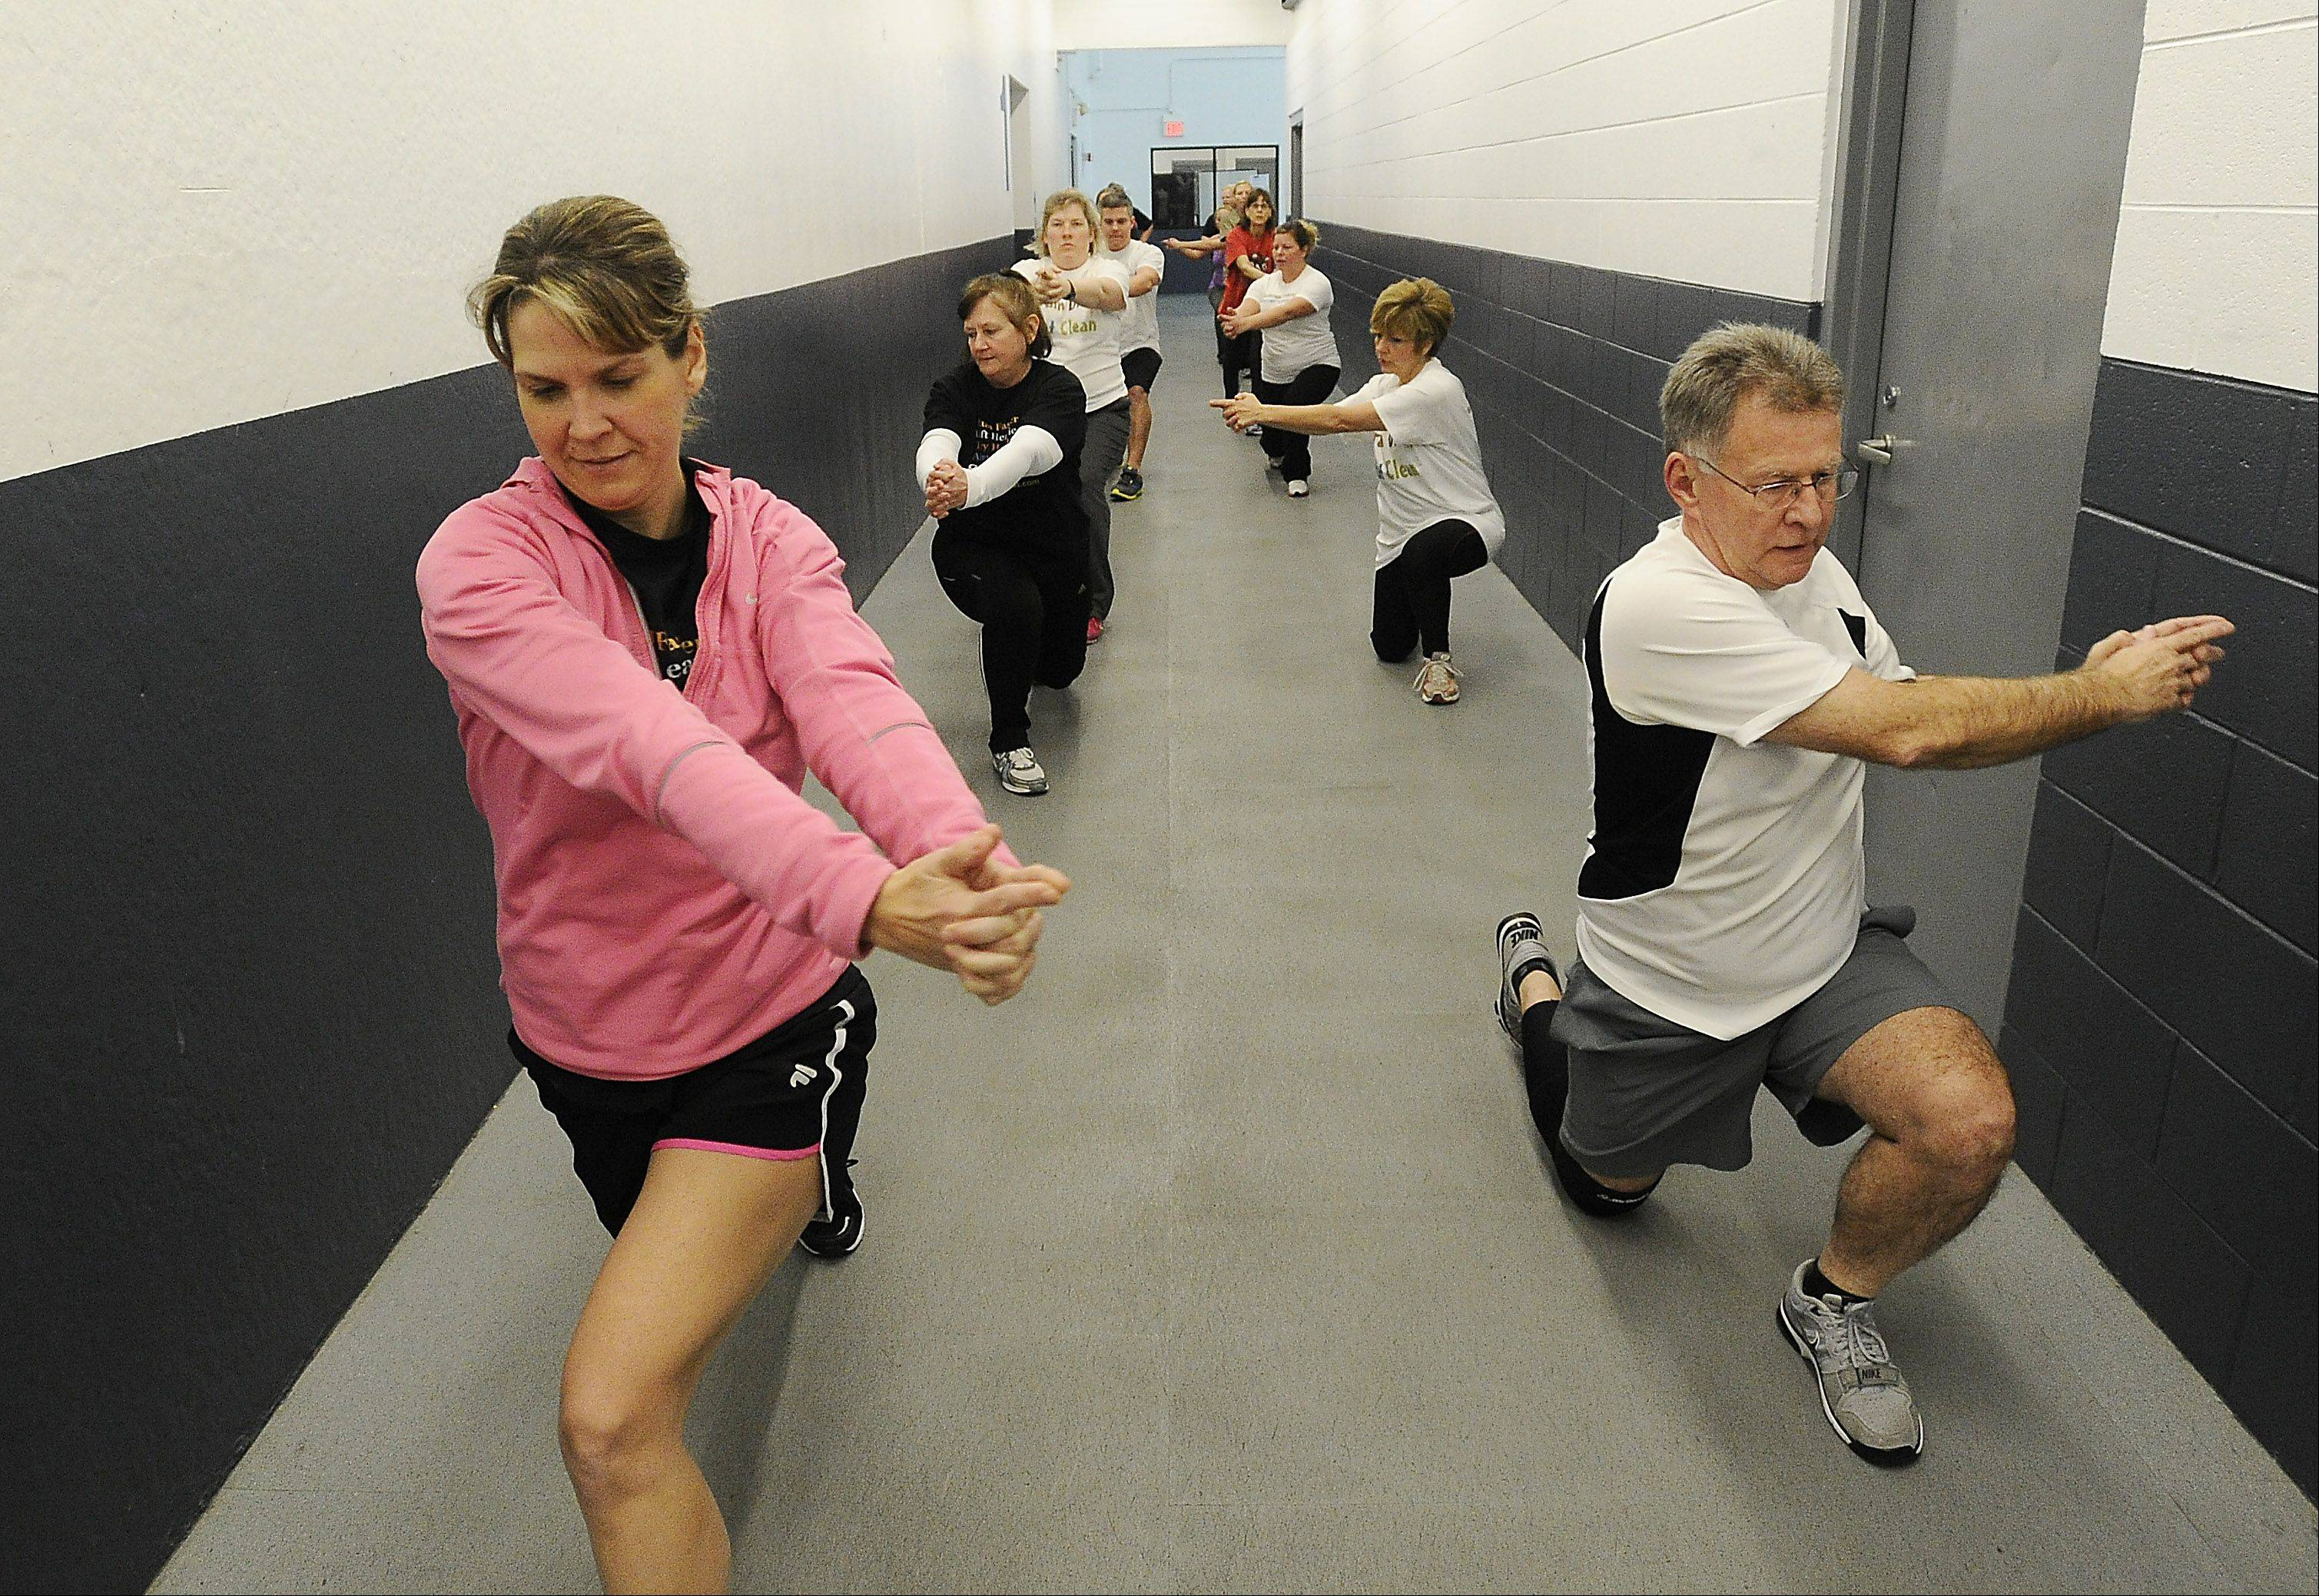 Members of the Train Like a Trooper Boot Camp, run by retired Illinois State Police captain Tami Haukedahl, of Arlington Heights, work out at the West Meadows Ice Arena in Rolling Meadows.